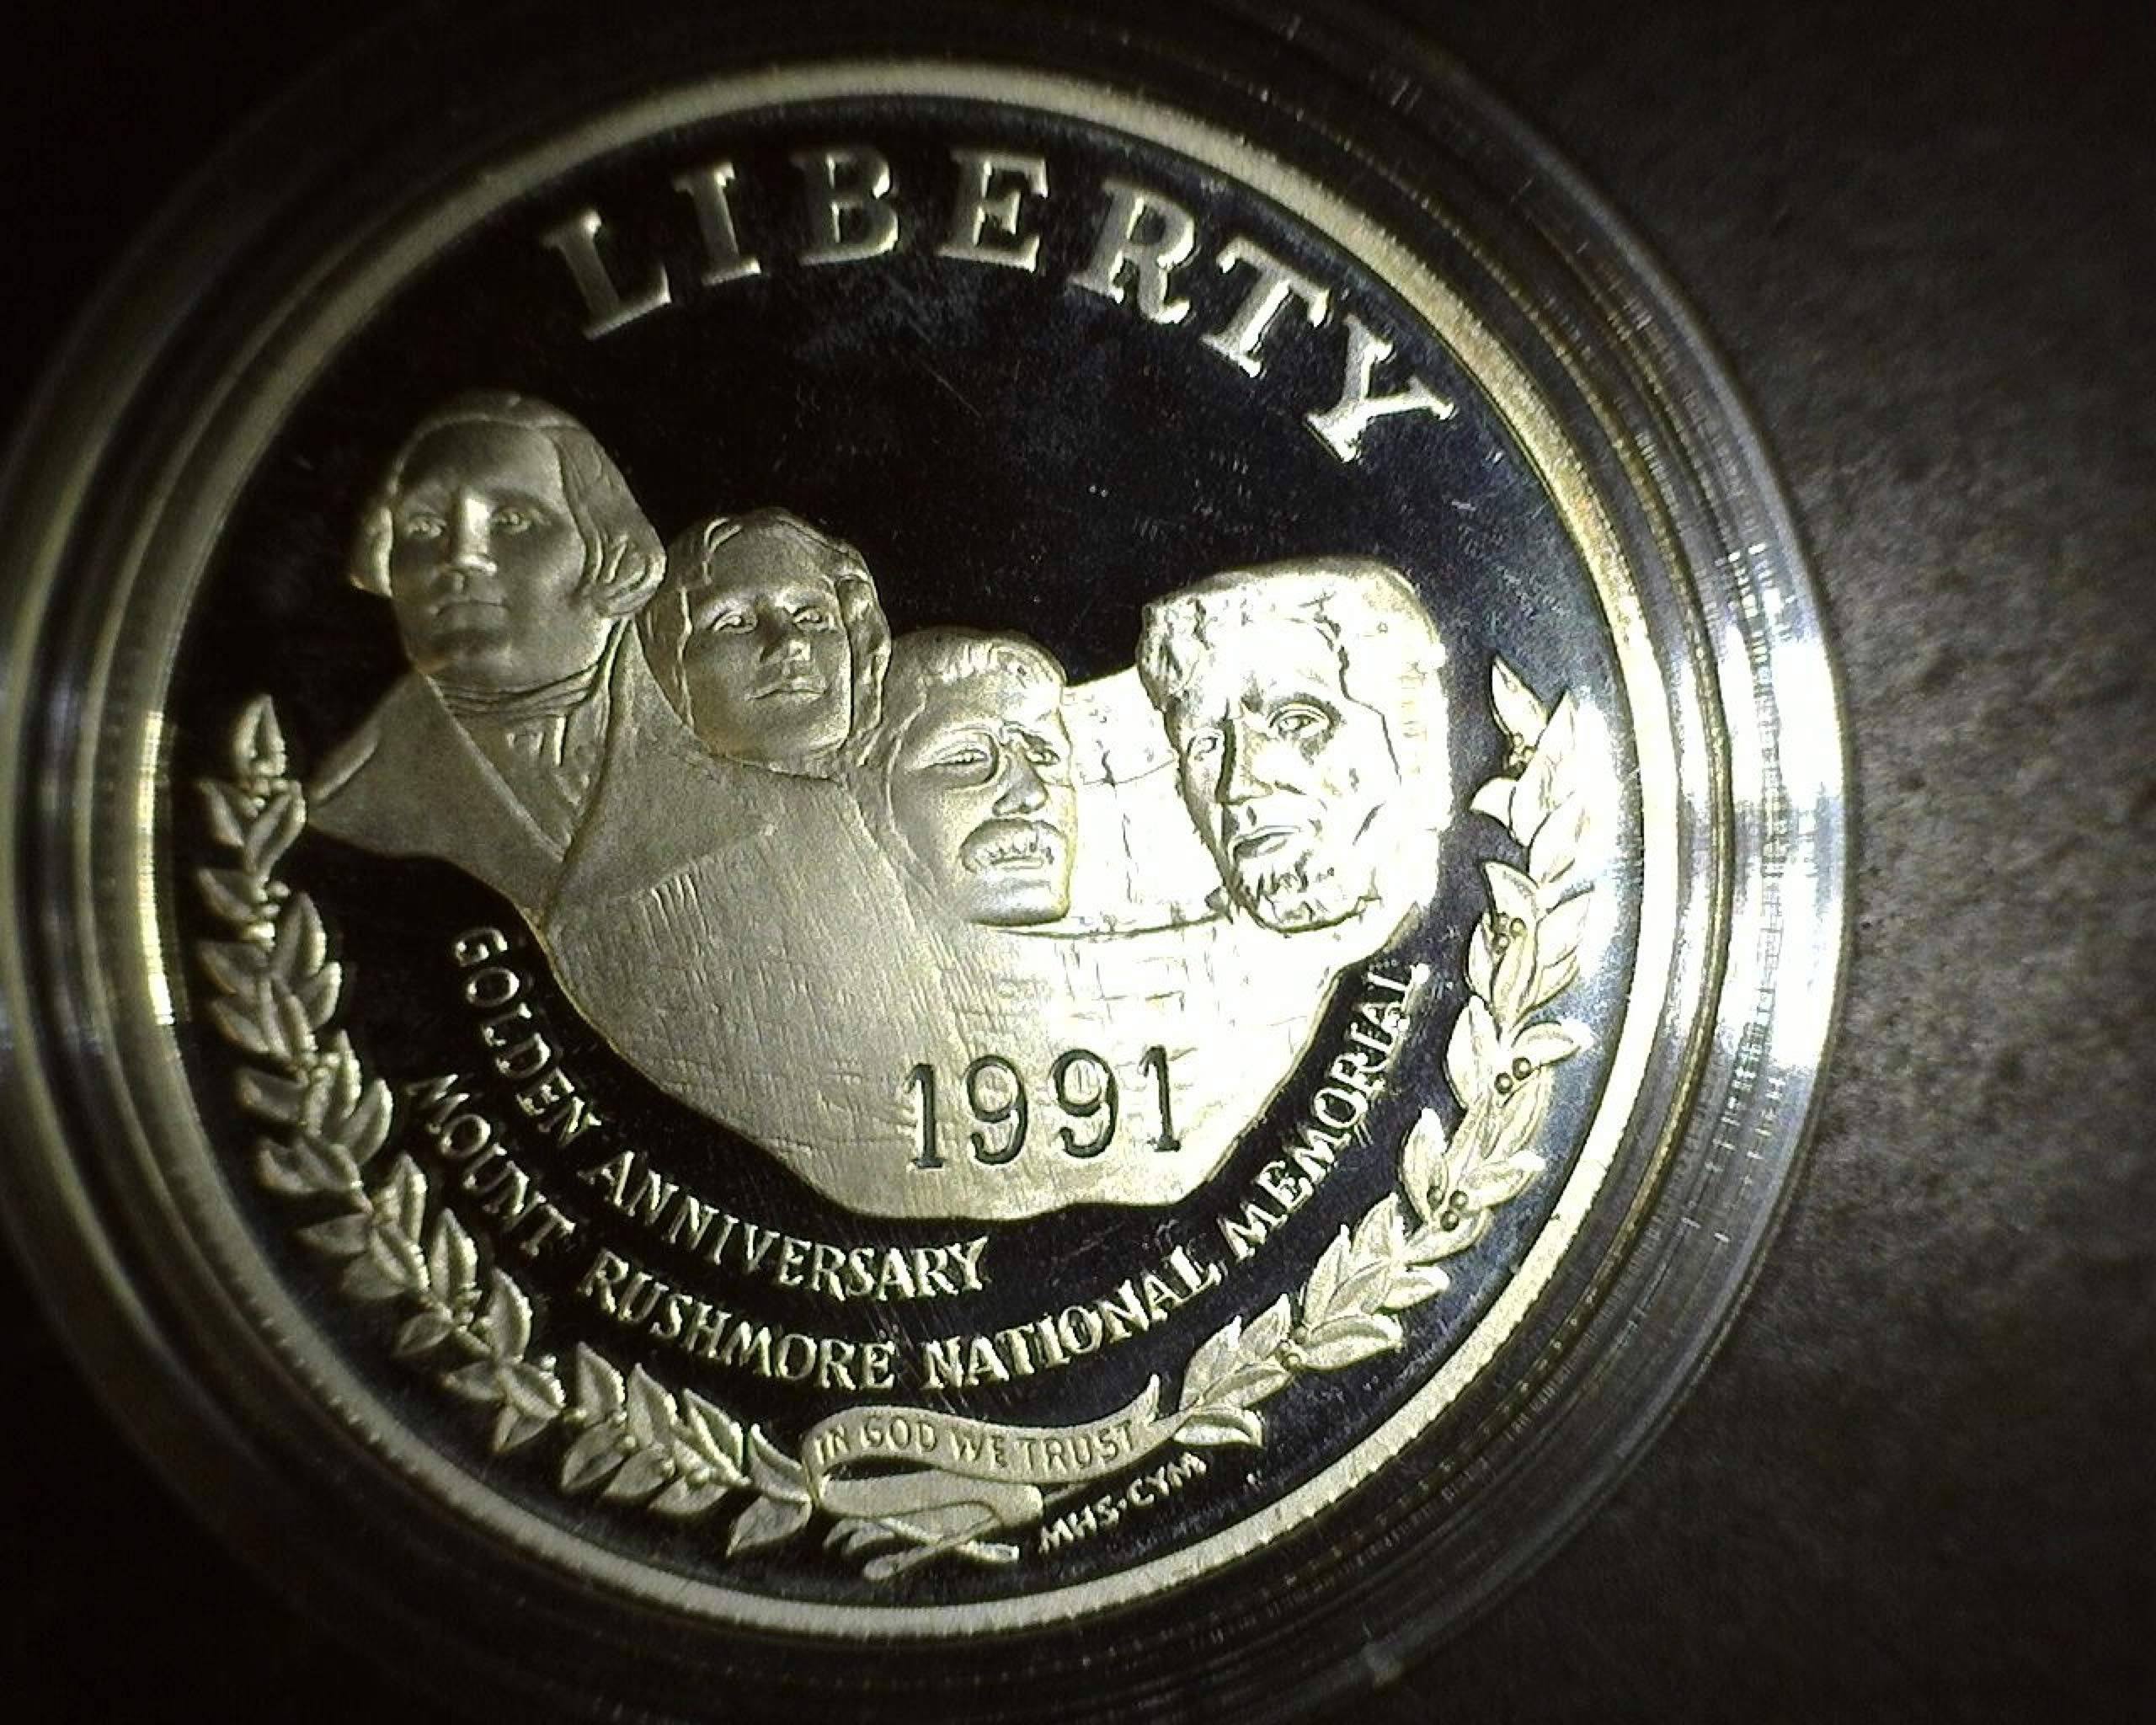 1991 S Mount Rushmore Golden Anniversary PROOF Silver Dollar $1 PROOF US Mint